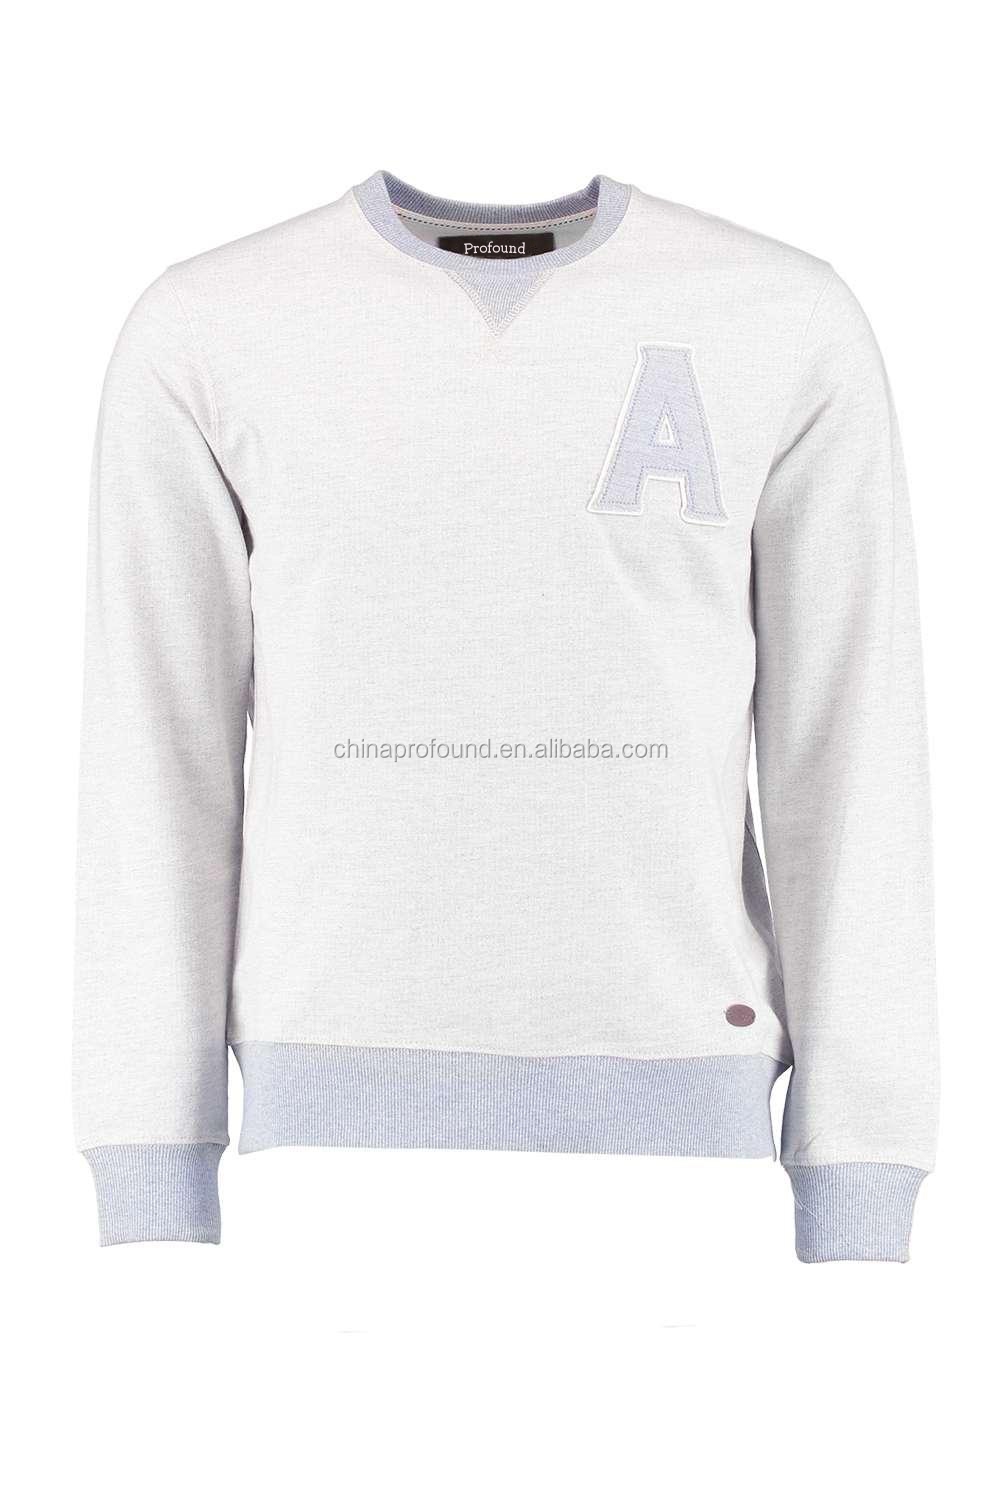 High quality cotton french terry comfort color mens sweatshirts hoodies, custom crewneck pullover no hood sweatshirt